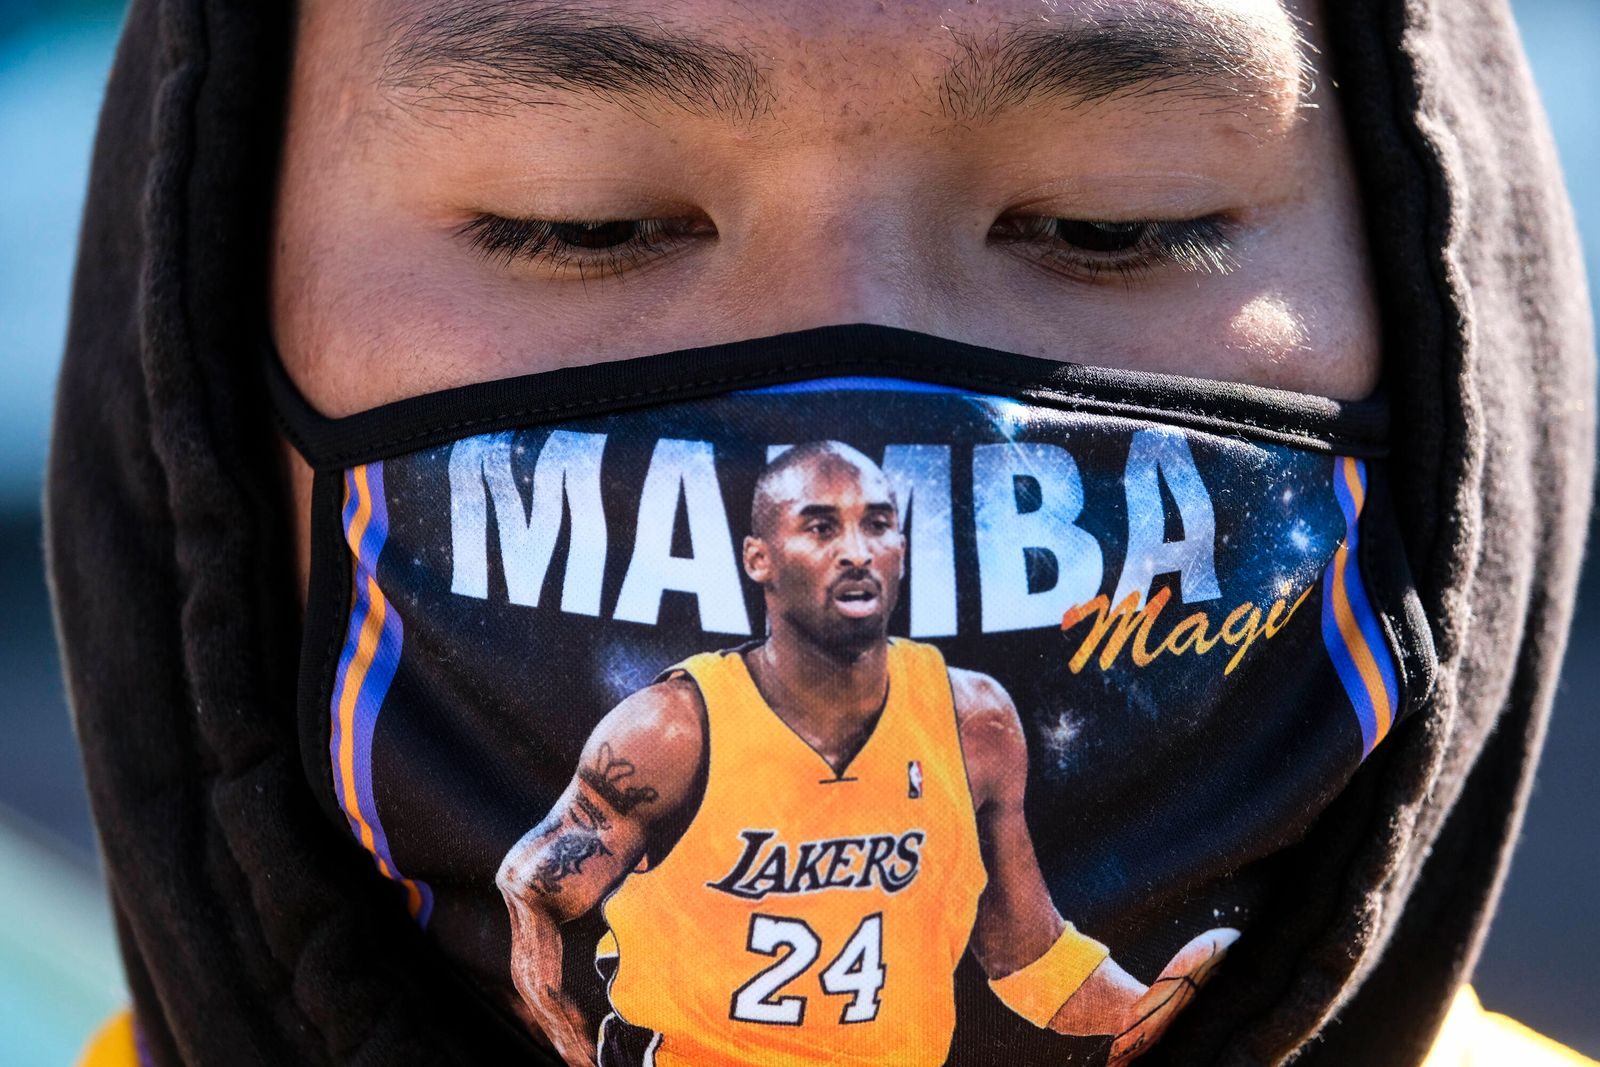 January 26, 2021, Los Angeles, California, USA: A fan wearing a face mask is seen in front of a makeshift memorial hono